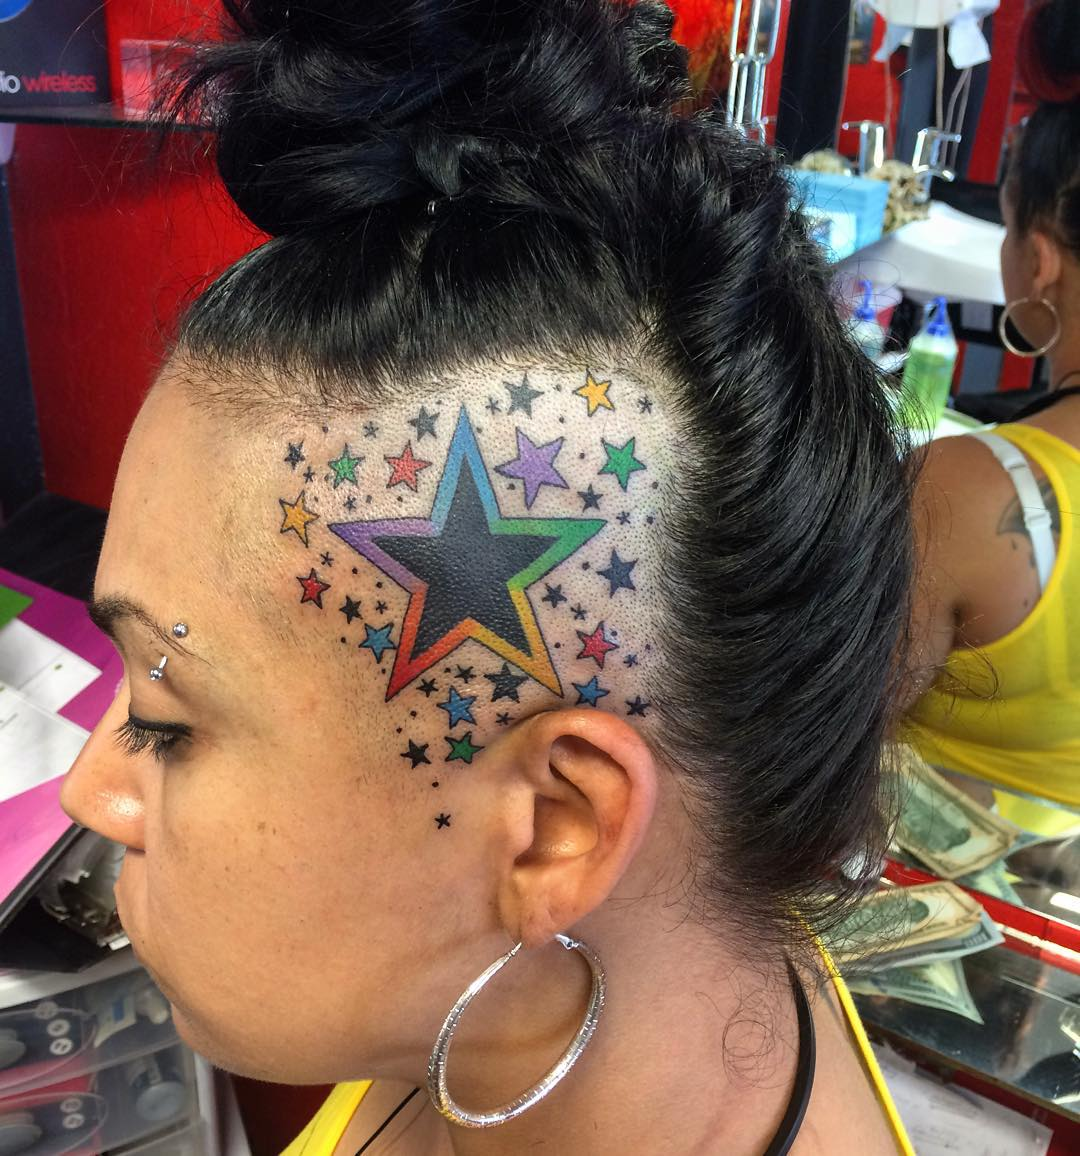 colored stars tattoos on girl head